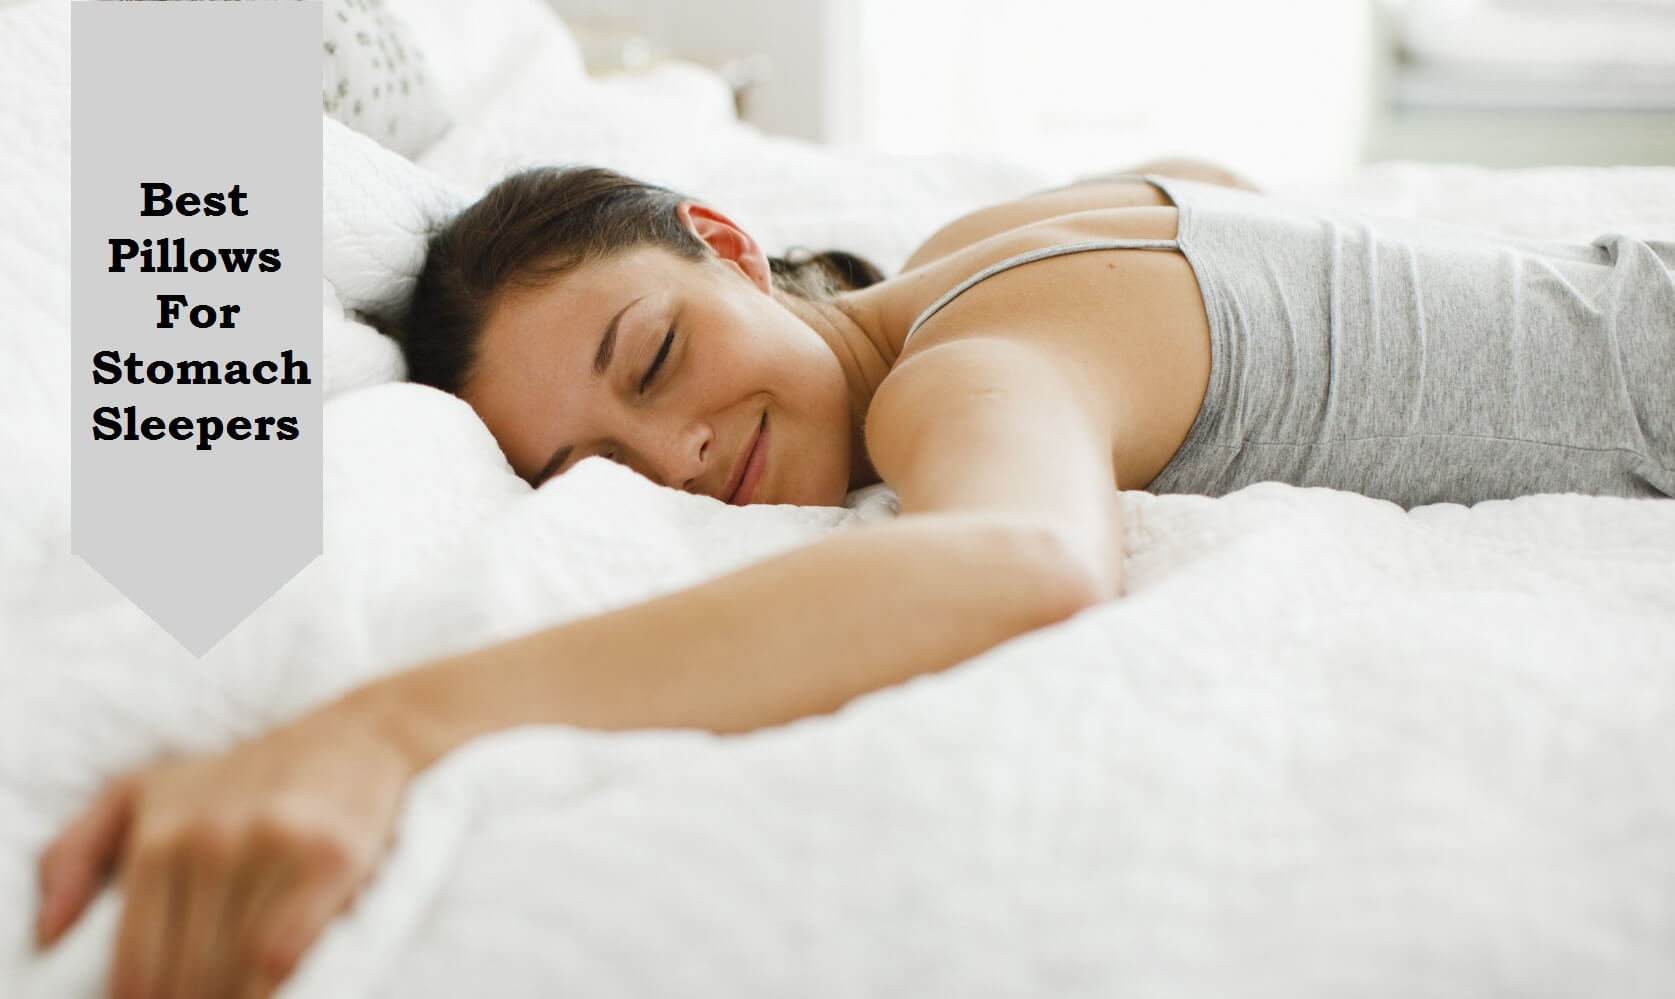 8 Best Pillows For Stomach Sleepers recommend